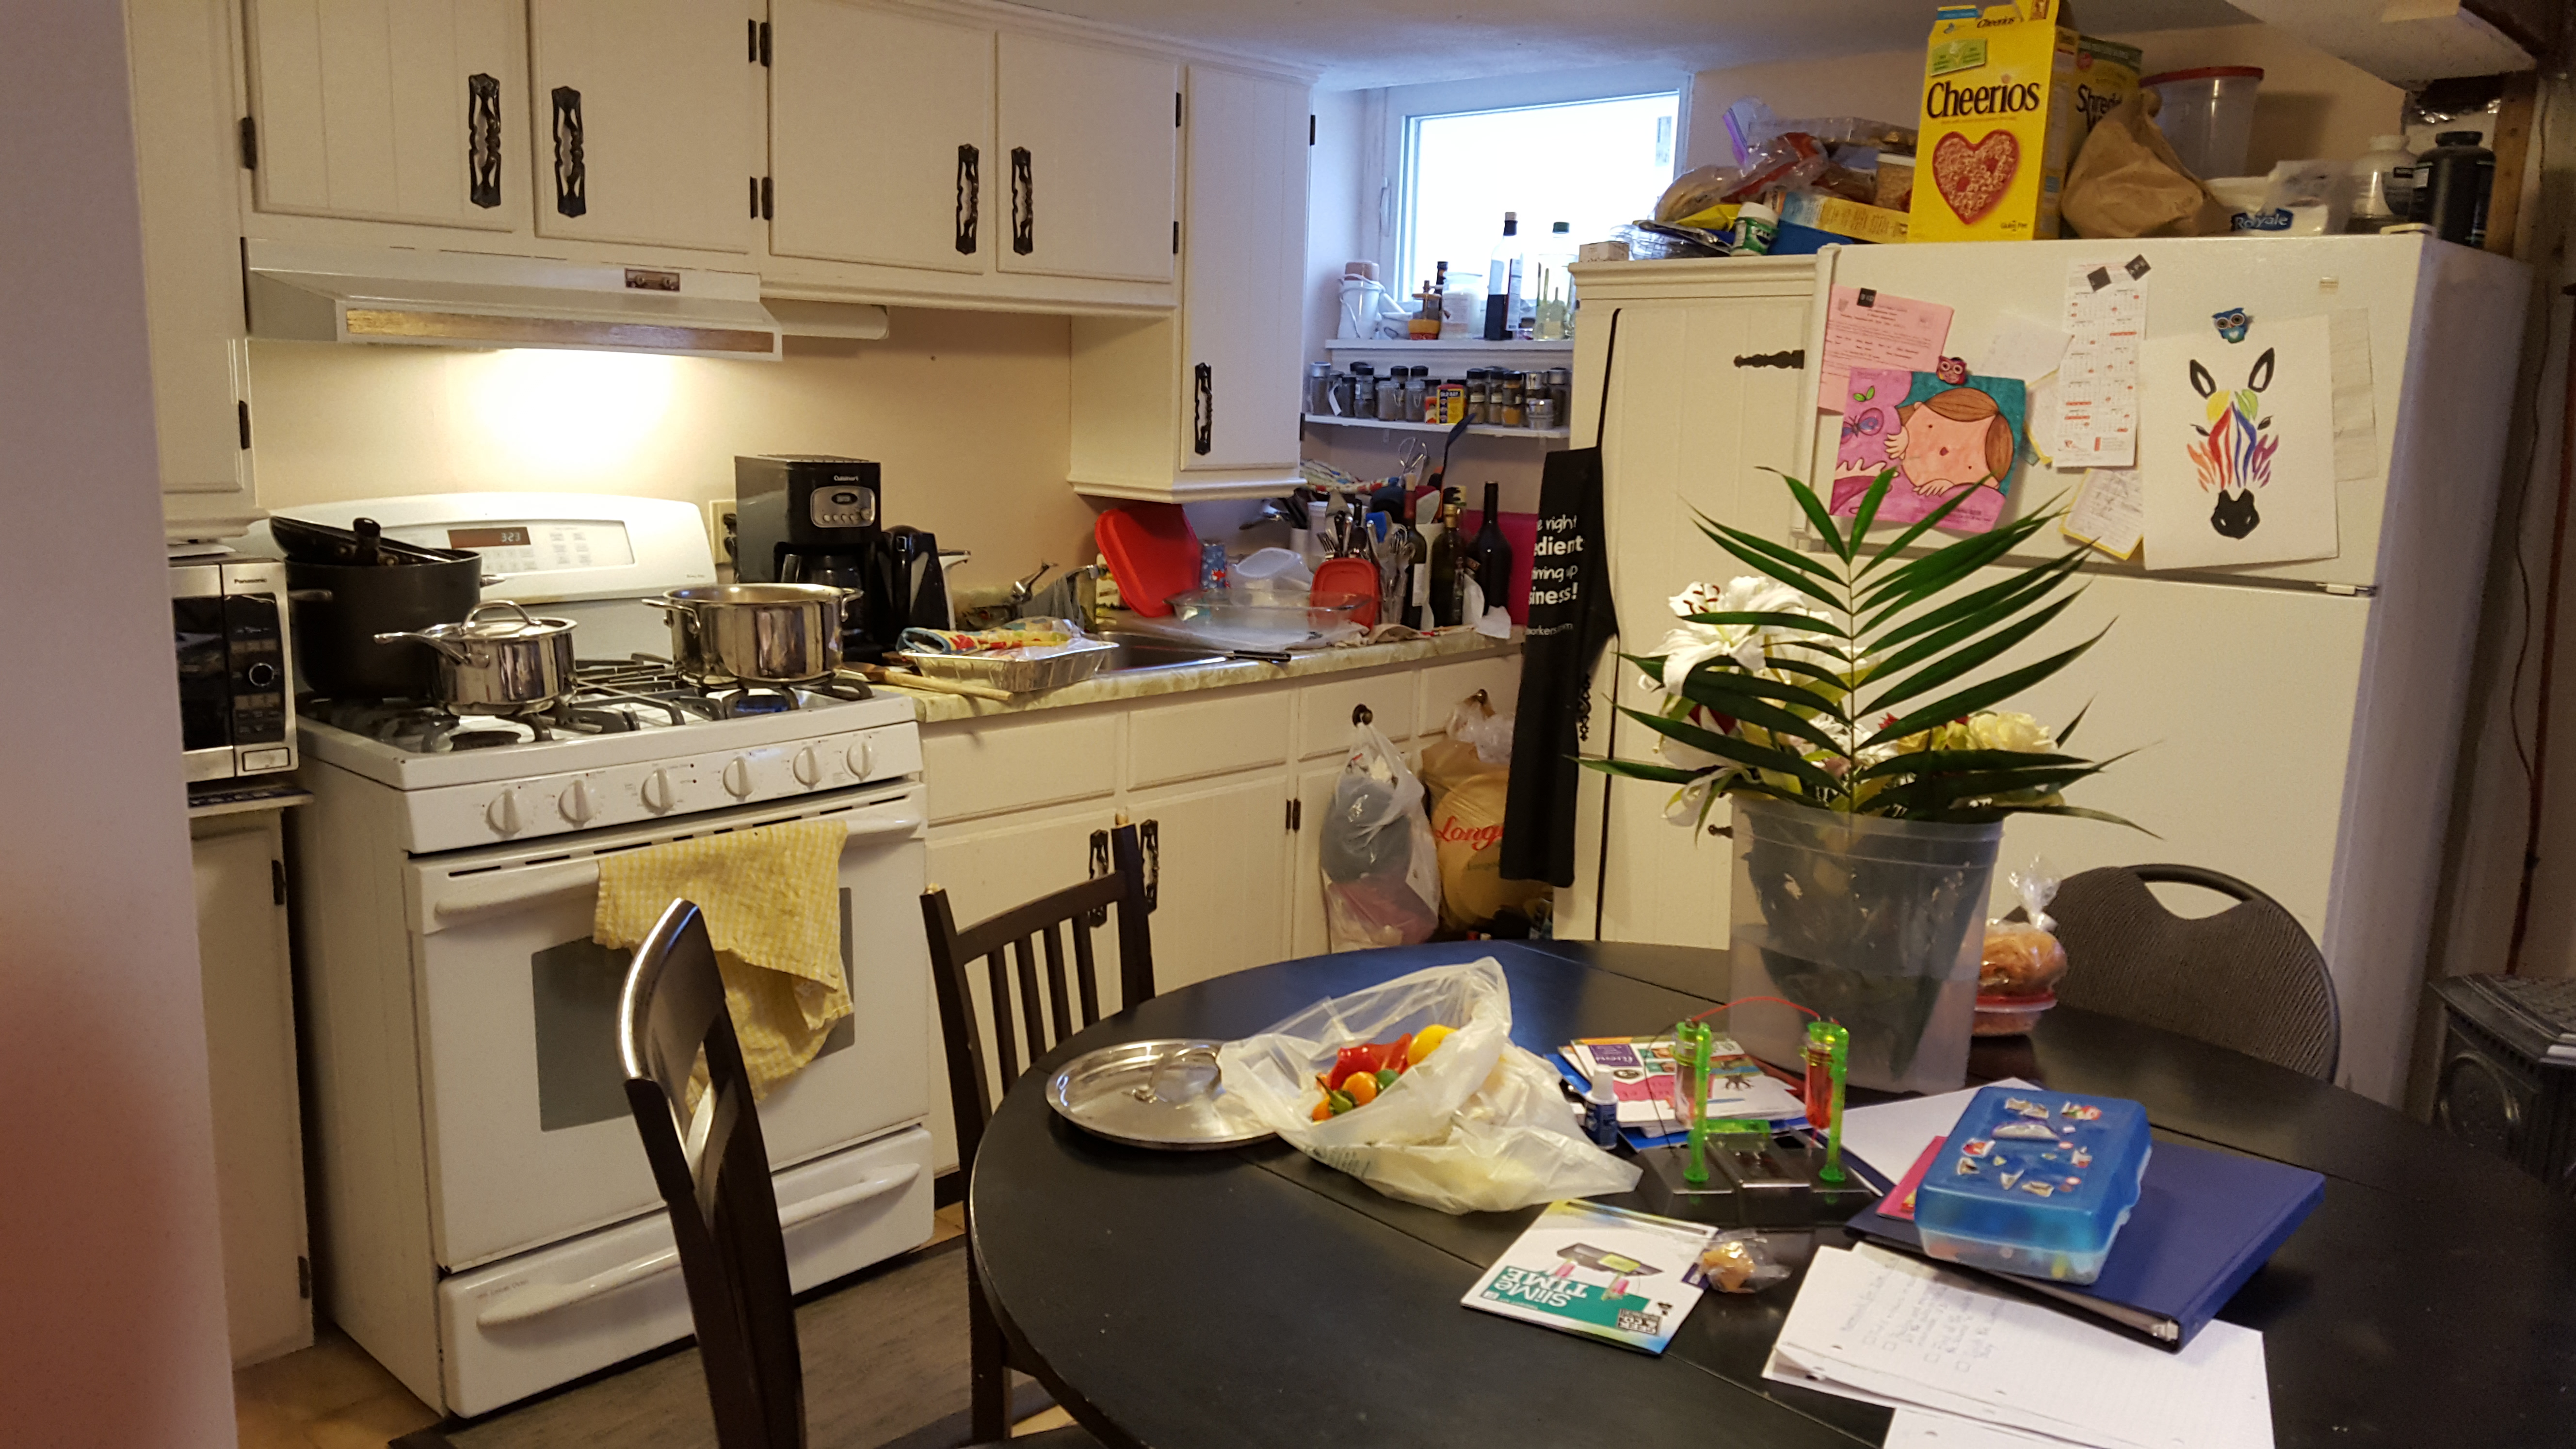 Total chaos. This is my kitchen. And that table is where we eat, do crafts, science projects, homework etc.